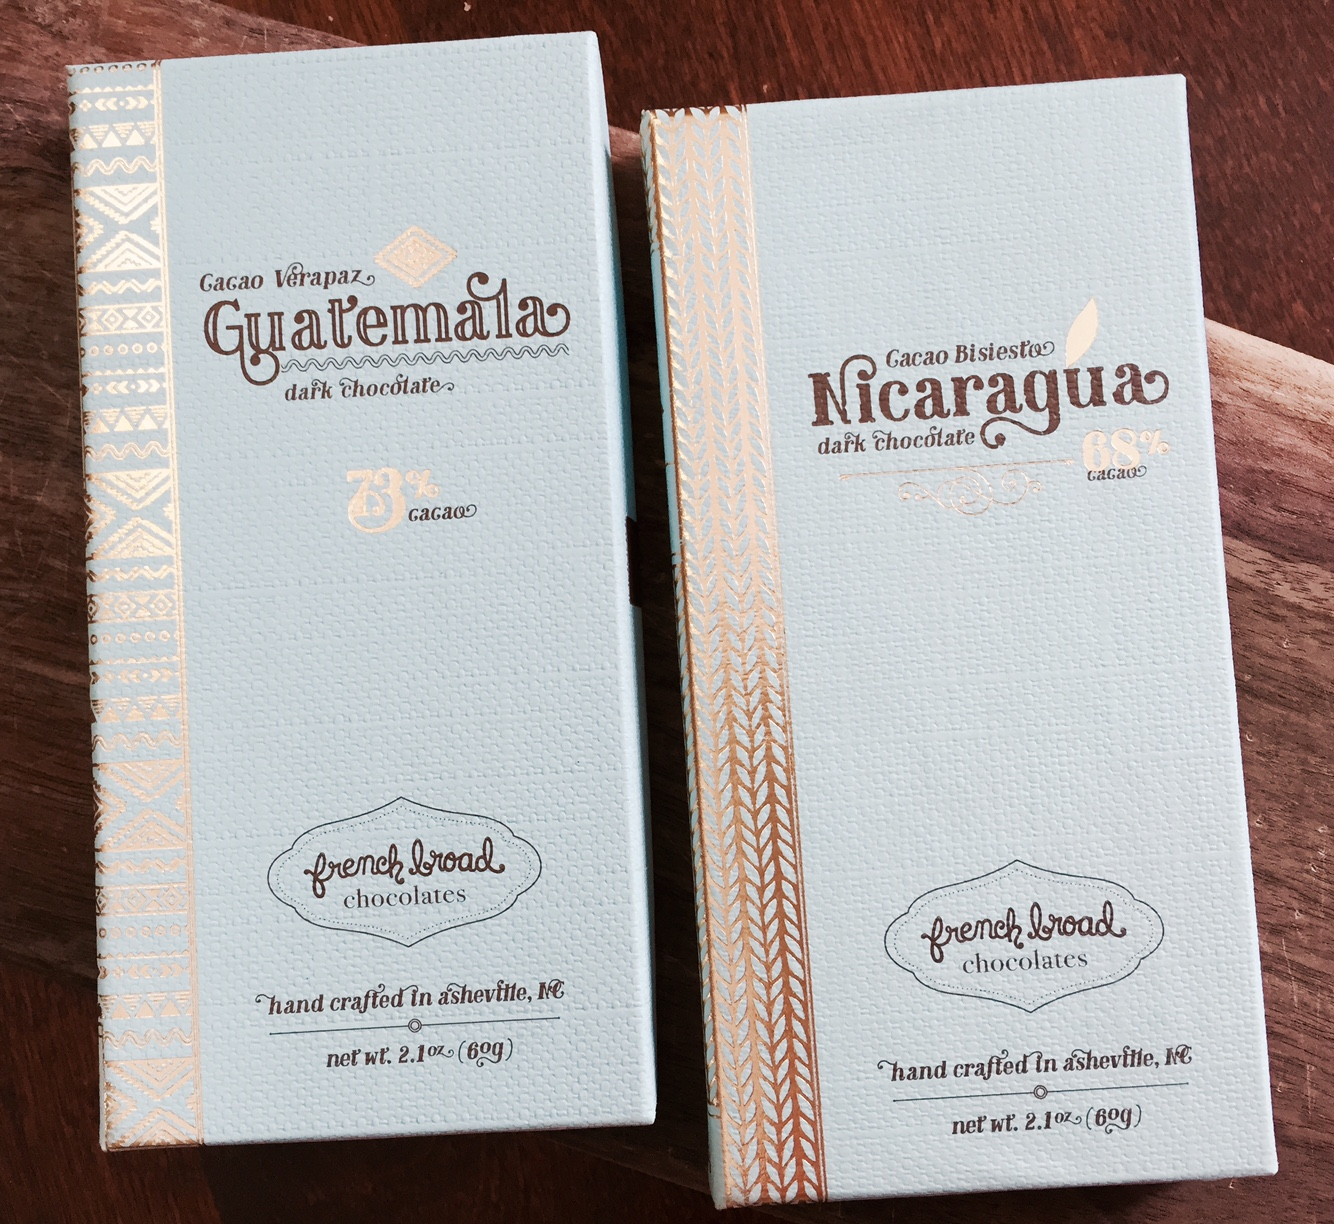 The Ultimate Chocolate Blog: French Broad Opens the Book on Chocolates